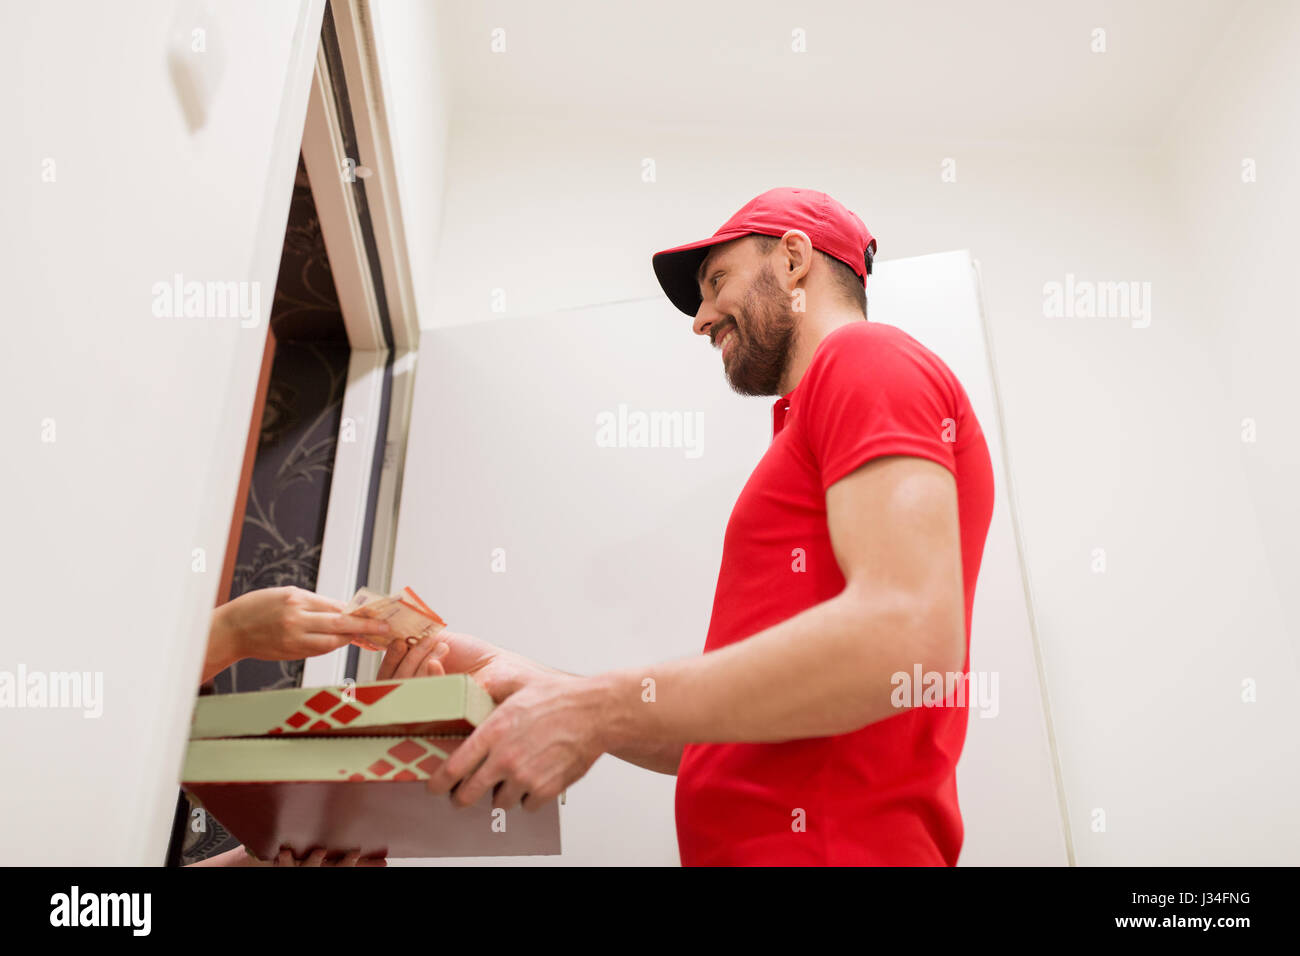 man delivering pizza to customer and taking money - Stock Image